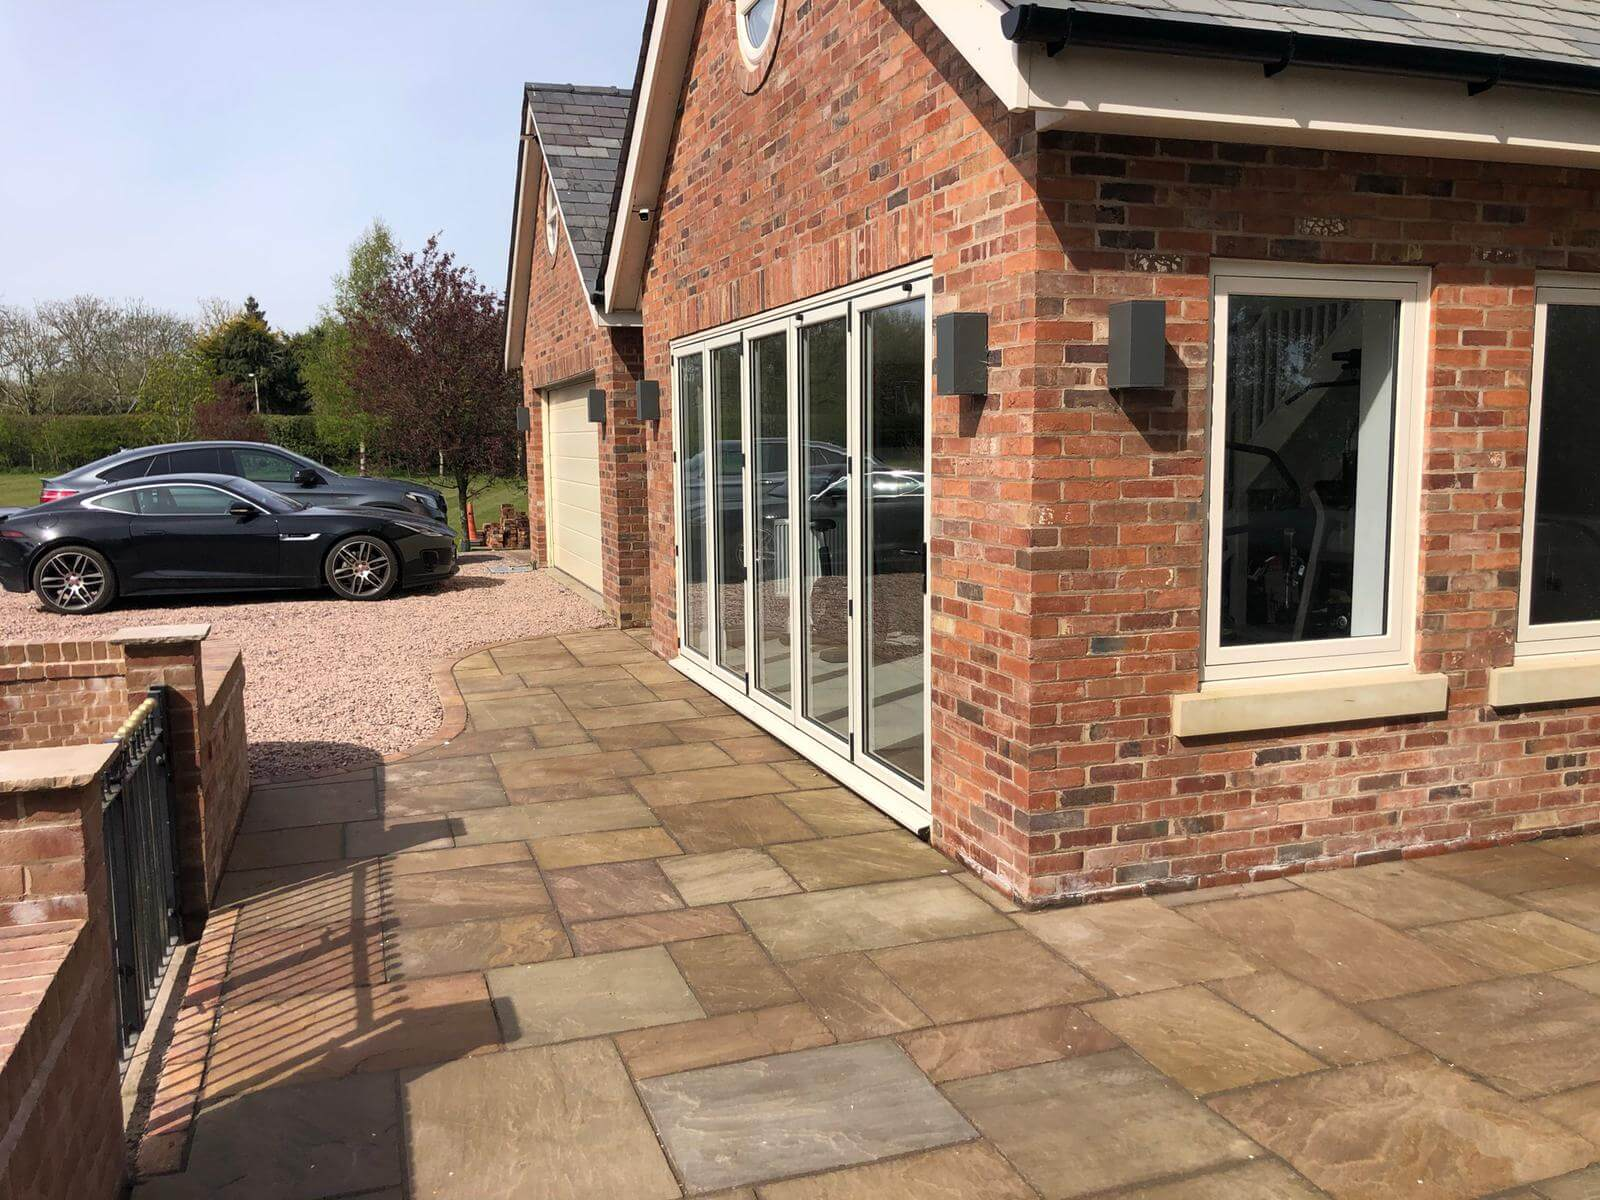 250 sq m of Indian stone 300 linear metres of kerbing and 350 sq m of Decorative aggregate